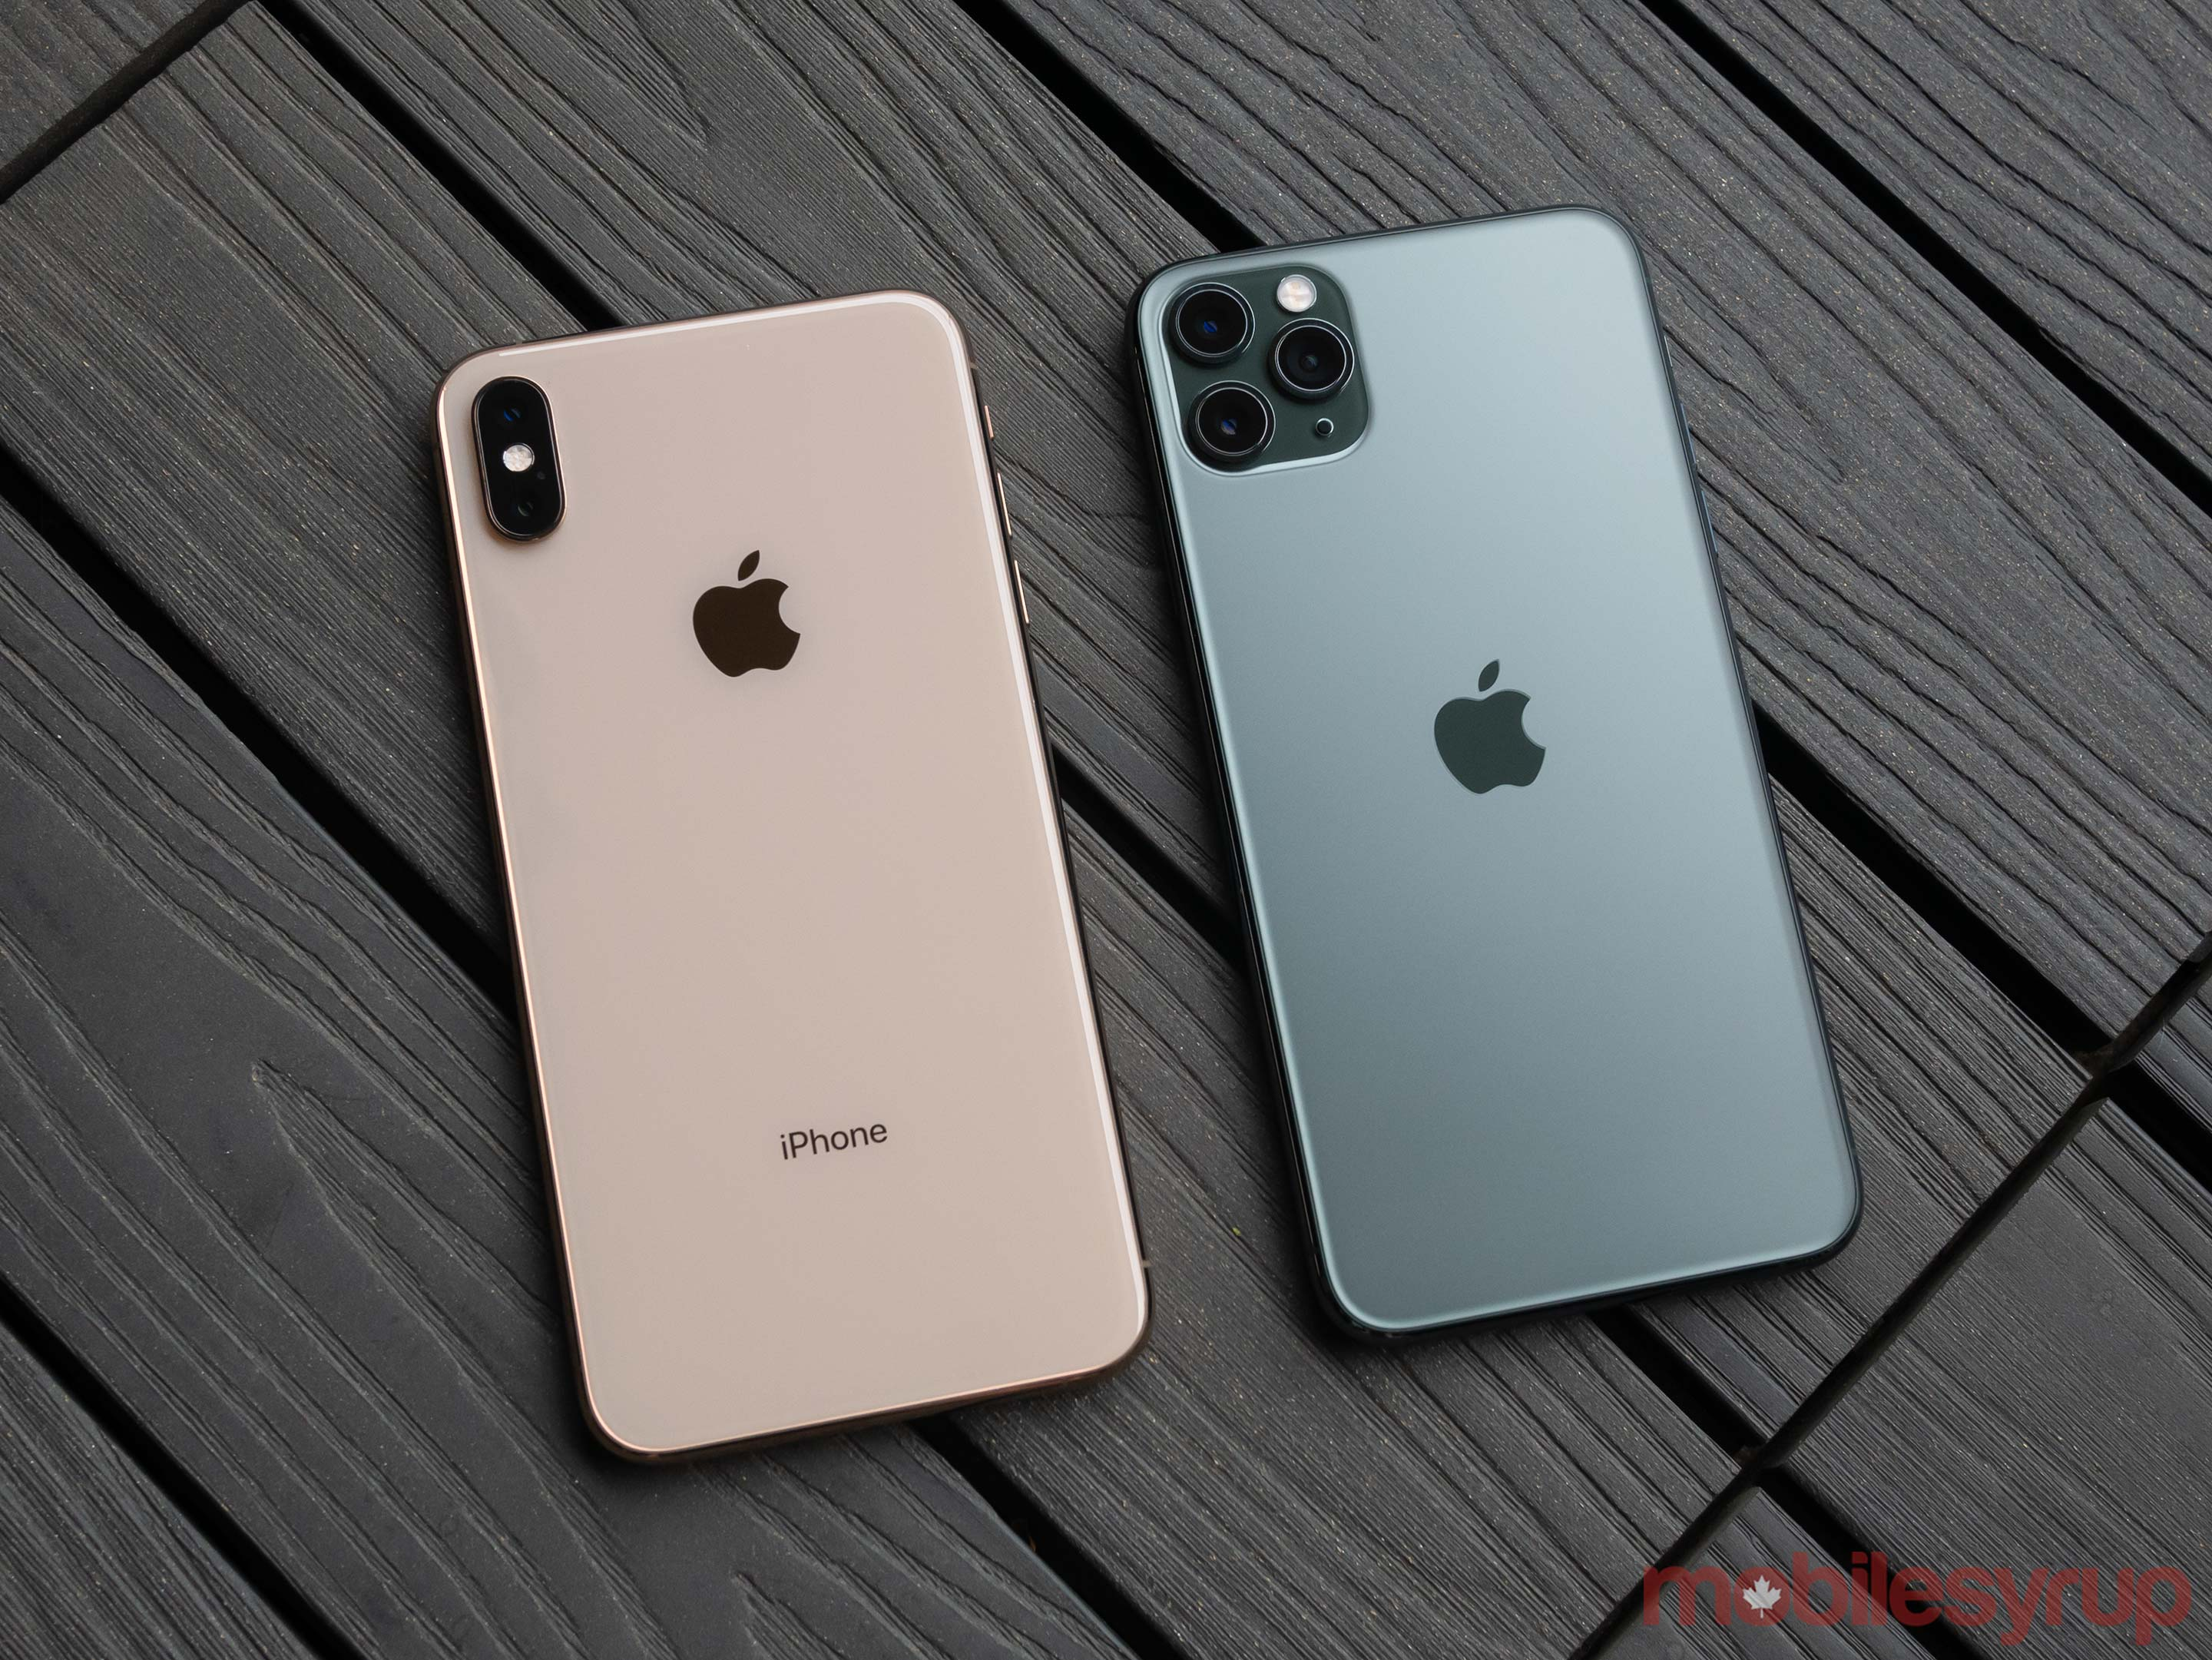 iPhone 11 Pro Max vs iPhone XS Max